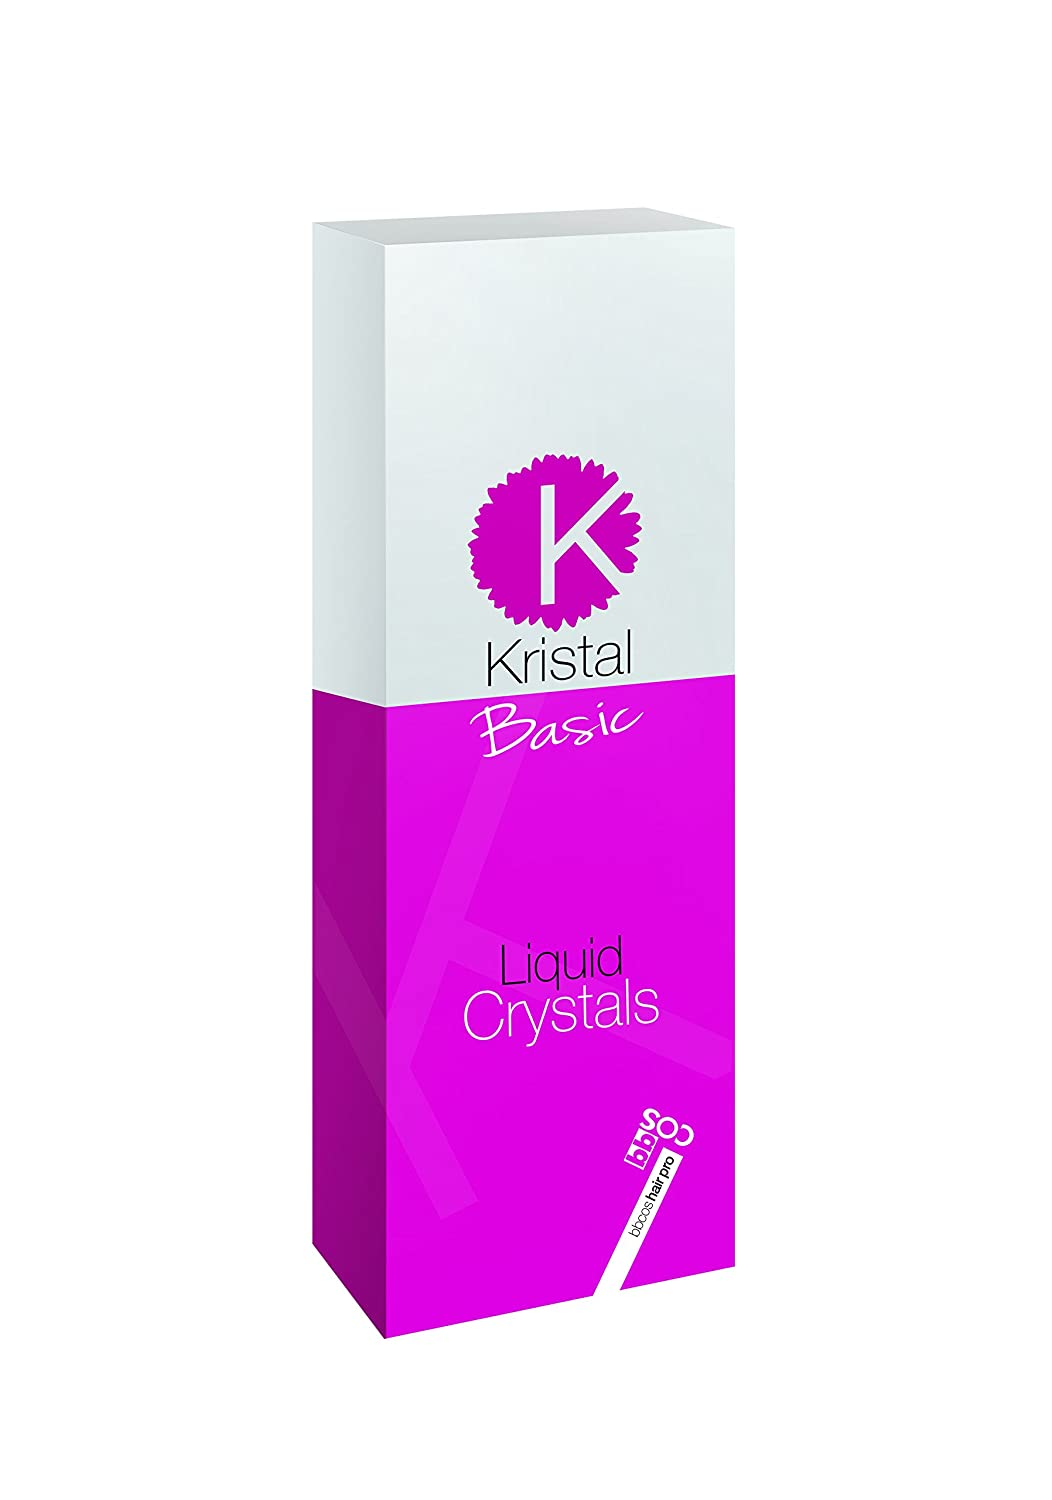 Liquid crystals for hair: reviews. How to use liquid crystals for hair 7